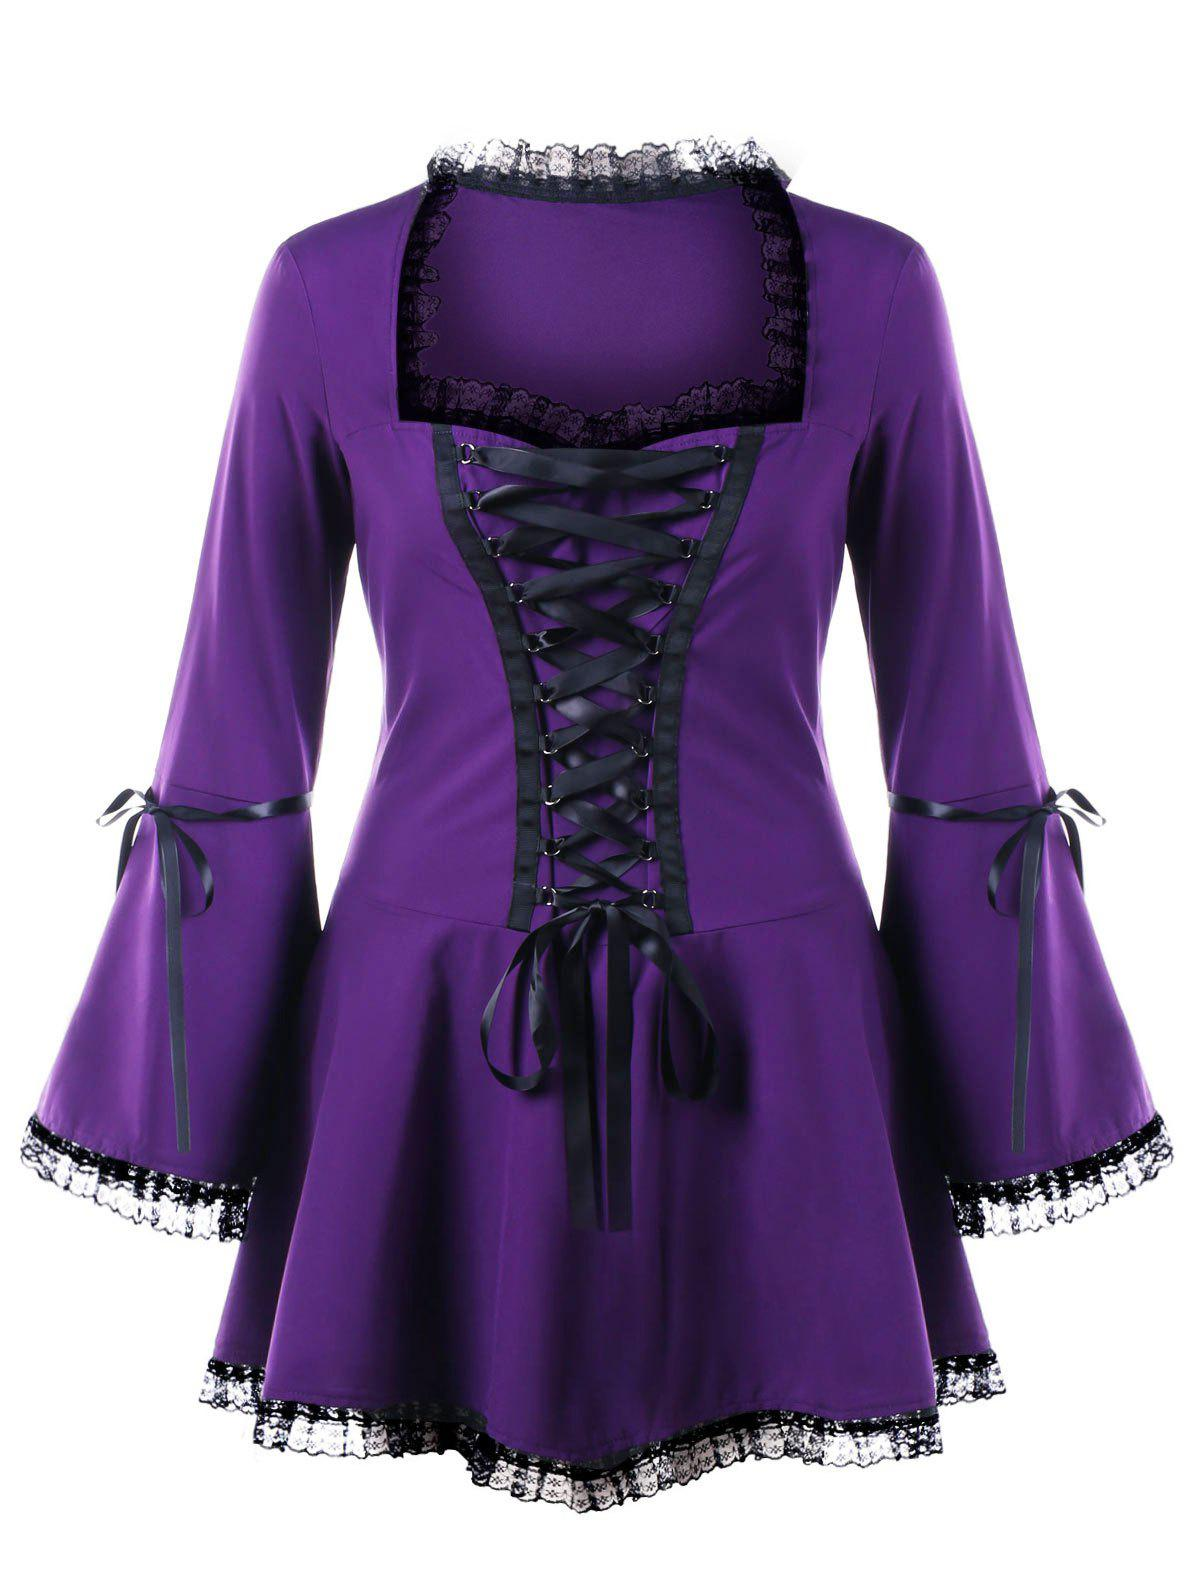 Halloween Plus Size Flare Sleeve Lace Up TopWOMEN<br><br>Size: 3XL; Color: PURPLE; Material: Polyester; Shirt Length: Long; Sleeve Length: Full; Collar: Sweetheart Neck; Style: Gothic; Season: Fall,Spring; Embellishment: Lace; Pattern Type: Solid; Weight: 0.3000kg; Package Contents: 1 x Top;